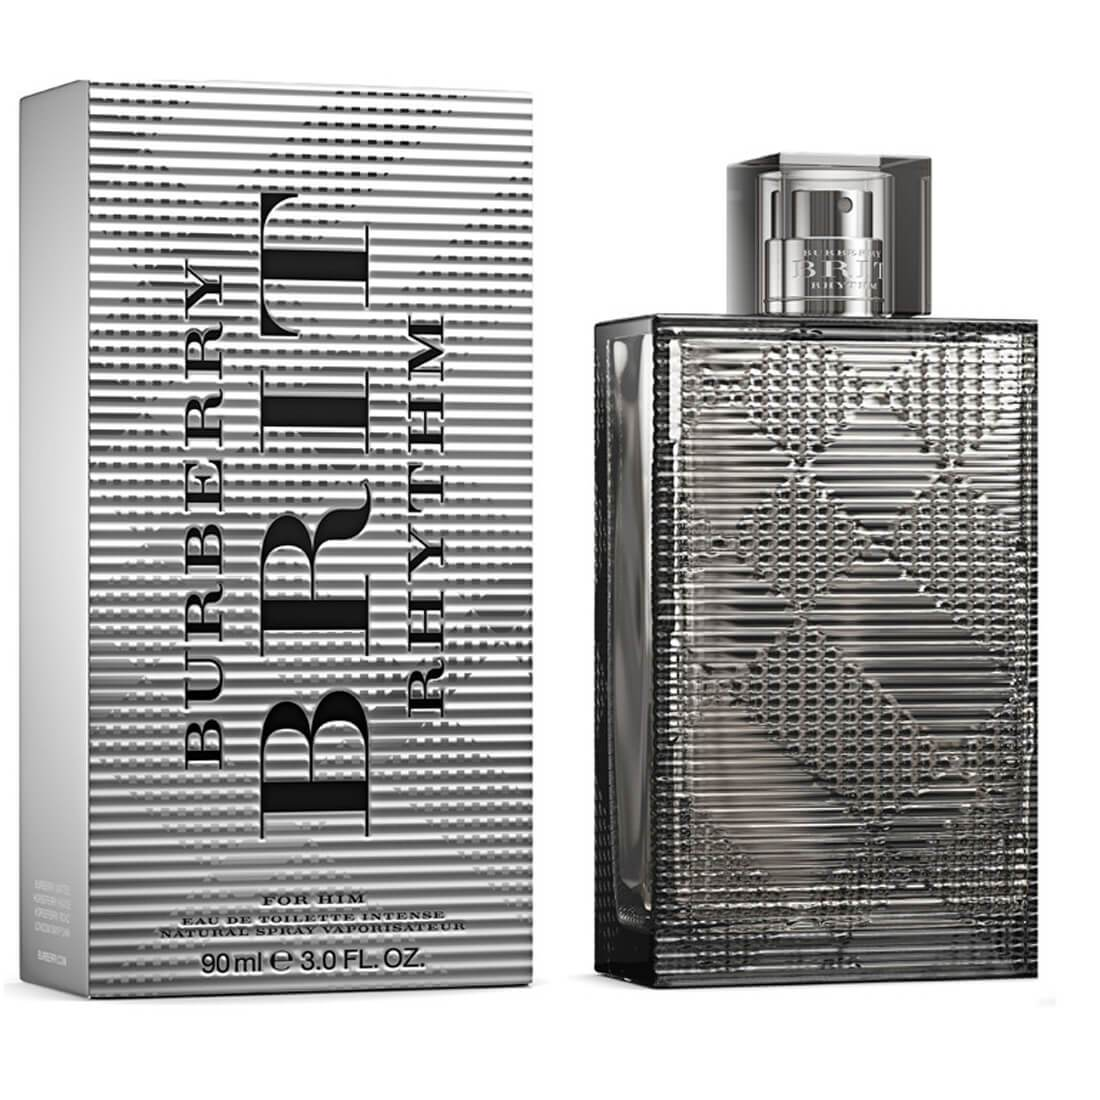 Burberry Brit Rhythm Intense Perfume For men - 90ml